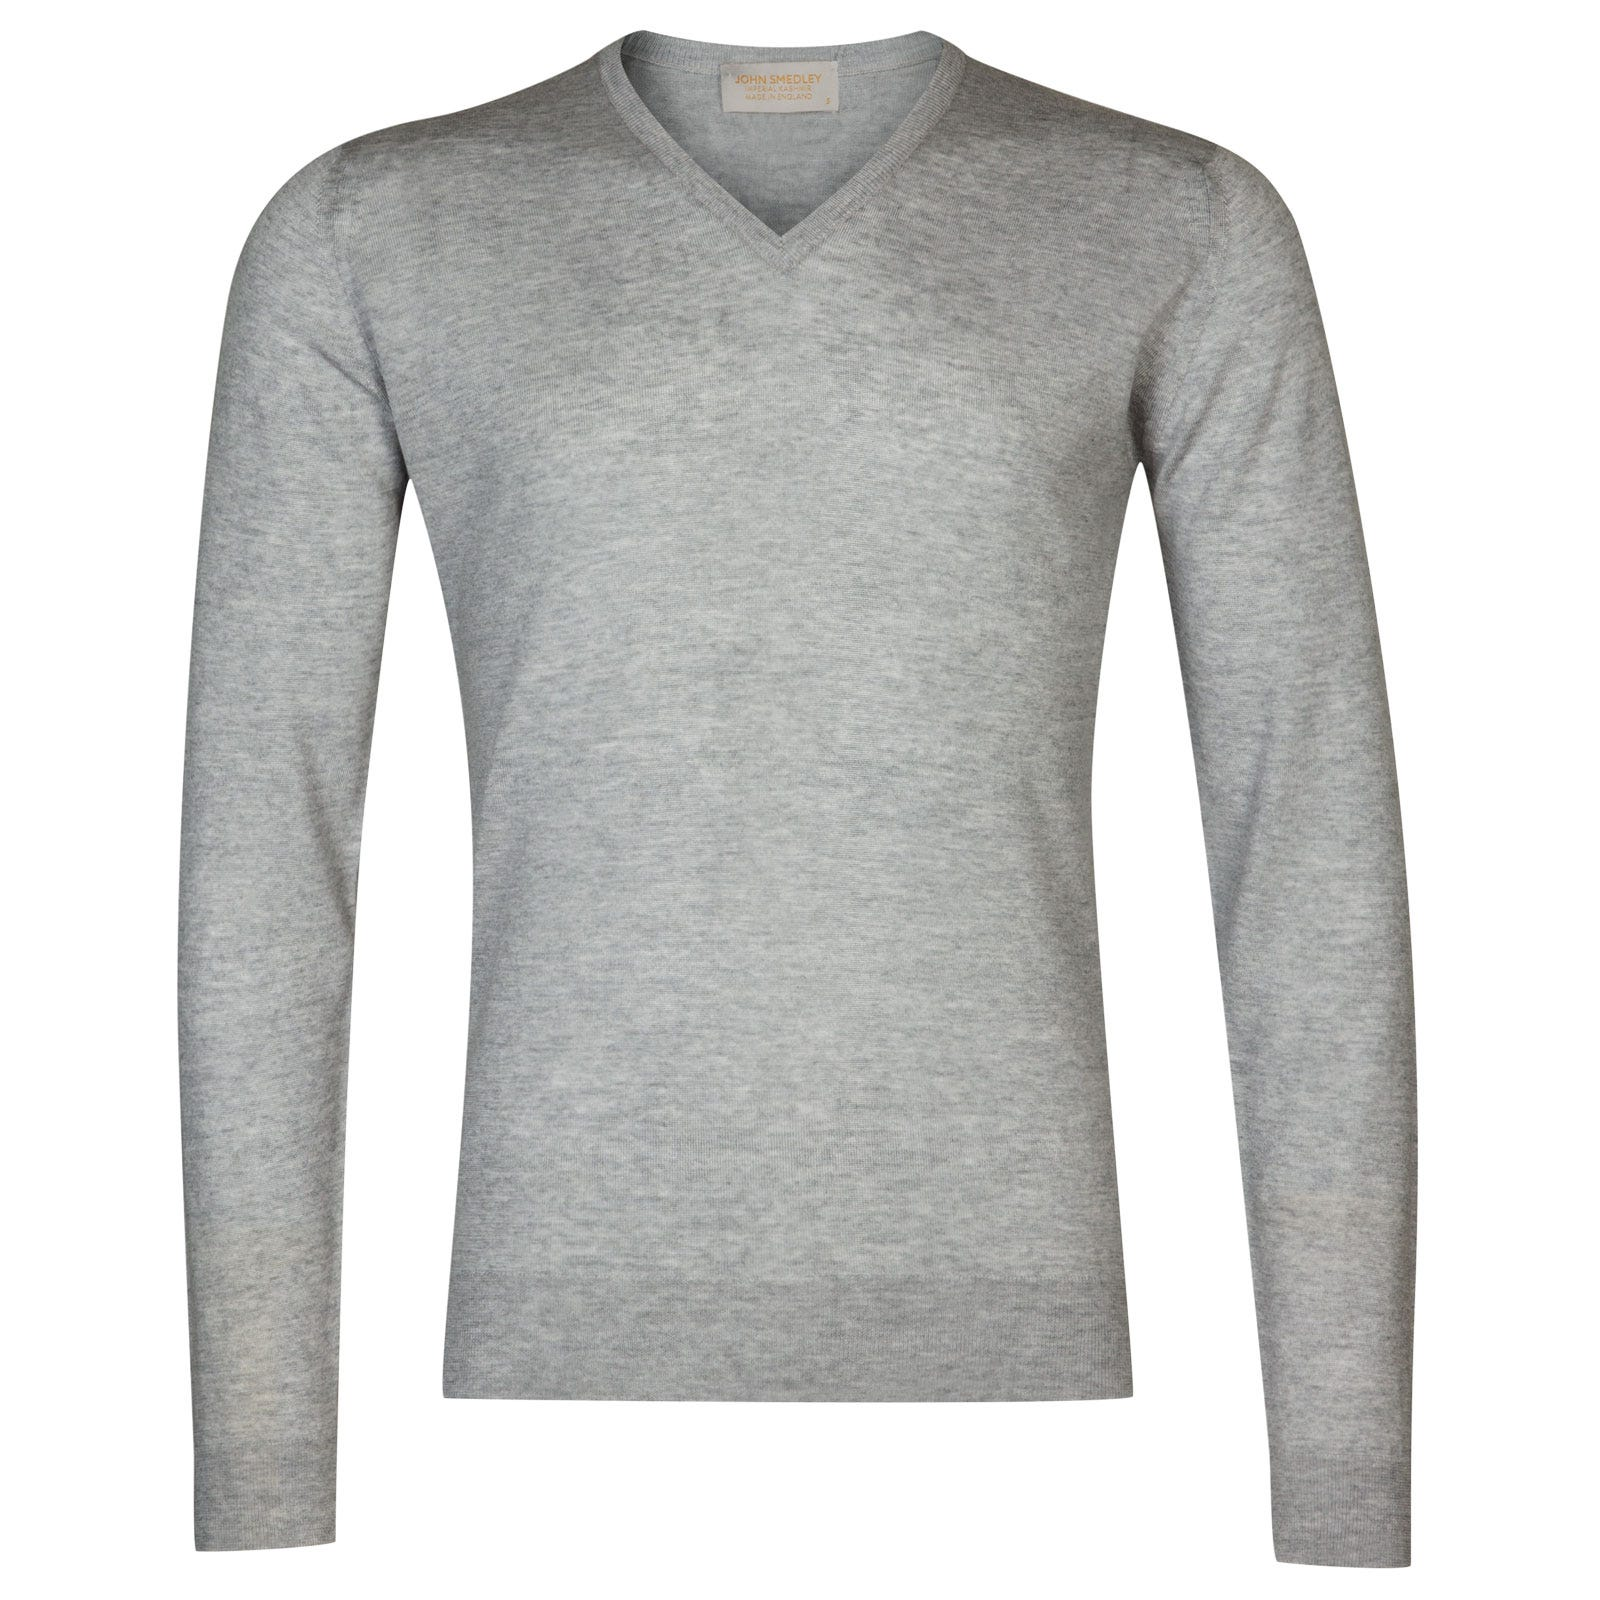 John Smedley newark Merino Wool and Cashmere Pullover in Soft Grey-XL